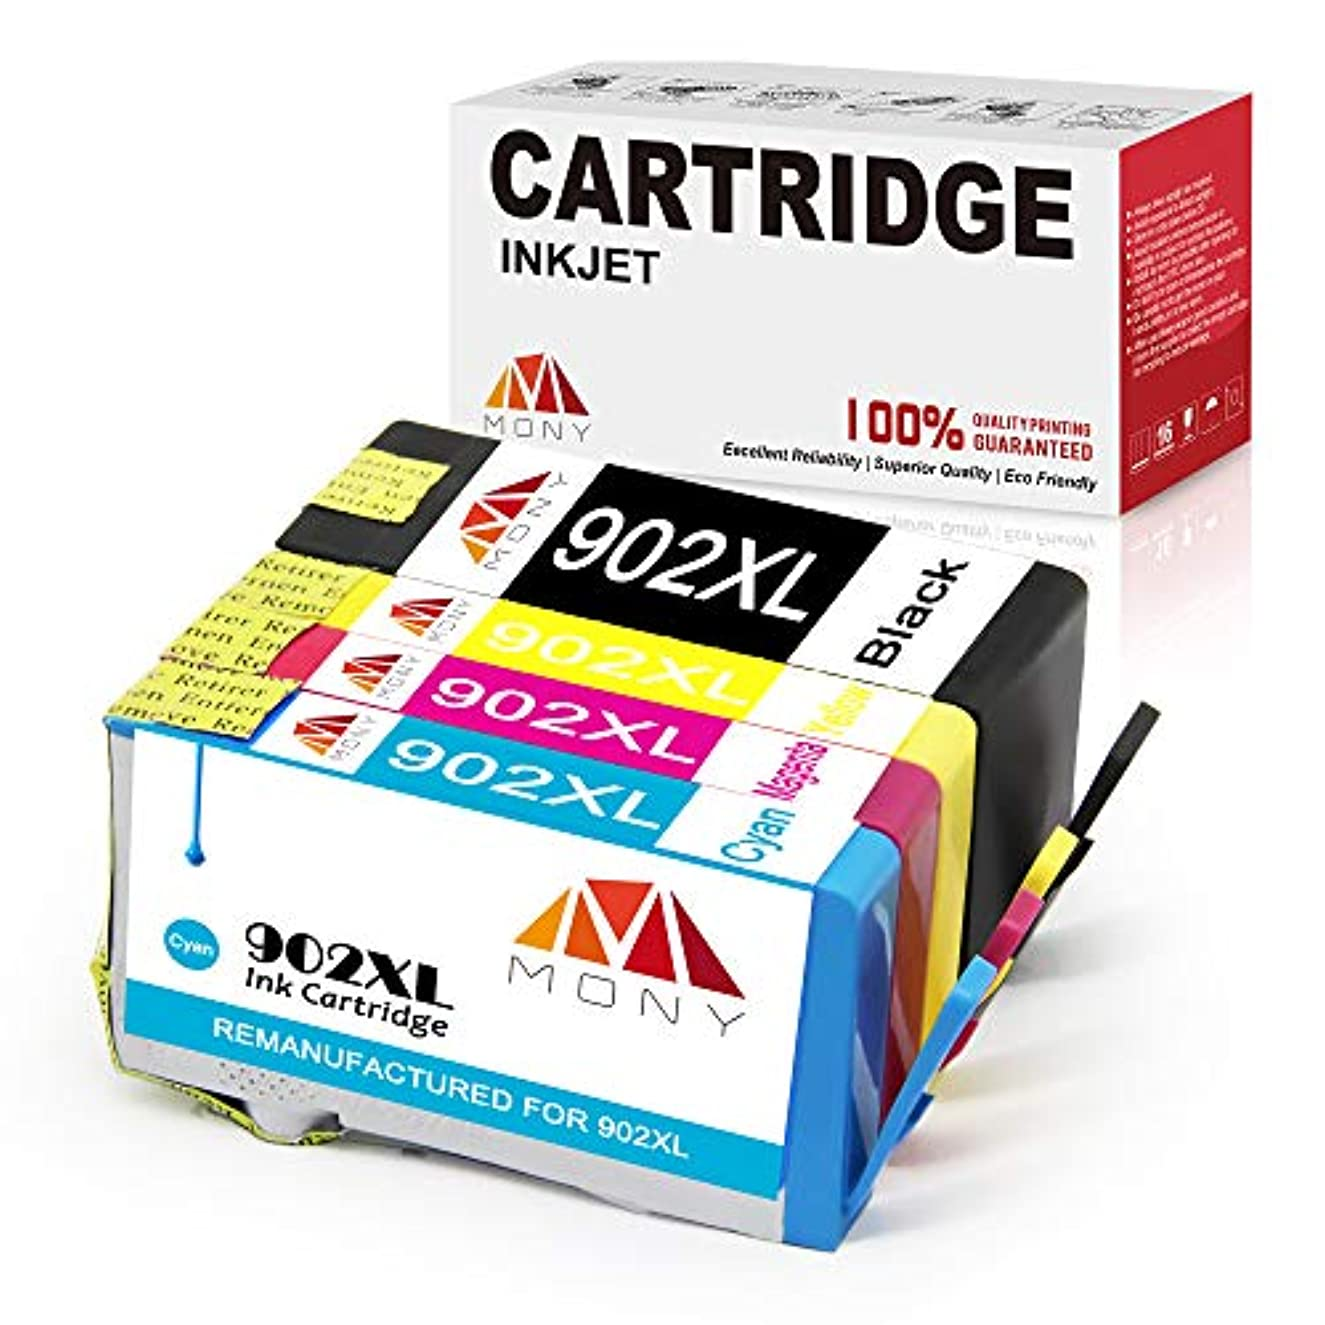 Mony Remanufactured HP 902XL 902 XL Ink Cartridges with New Updated Chip (1 Black, 1 Cyan, 1 Magenta, 1 Yellow) Replacement for HP Officejet Pro 6958 6978 6968 6962 6975 6970 6060 6954 6951 Printers